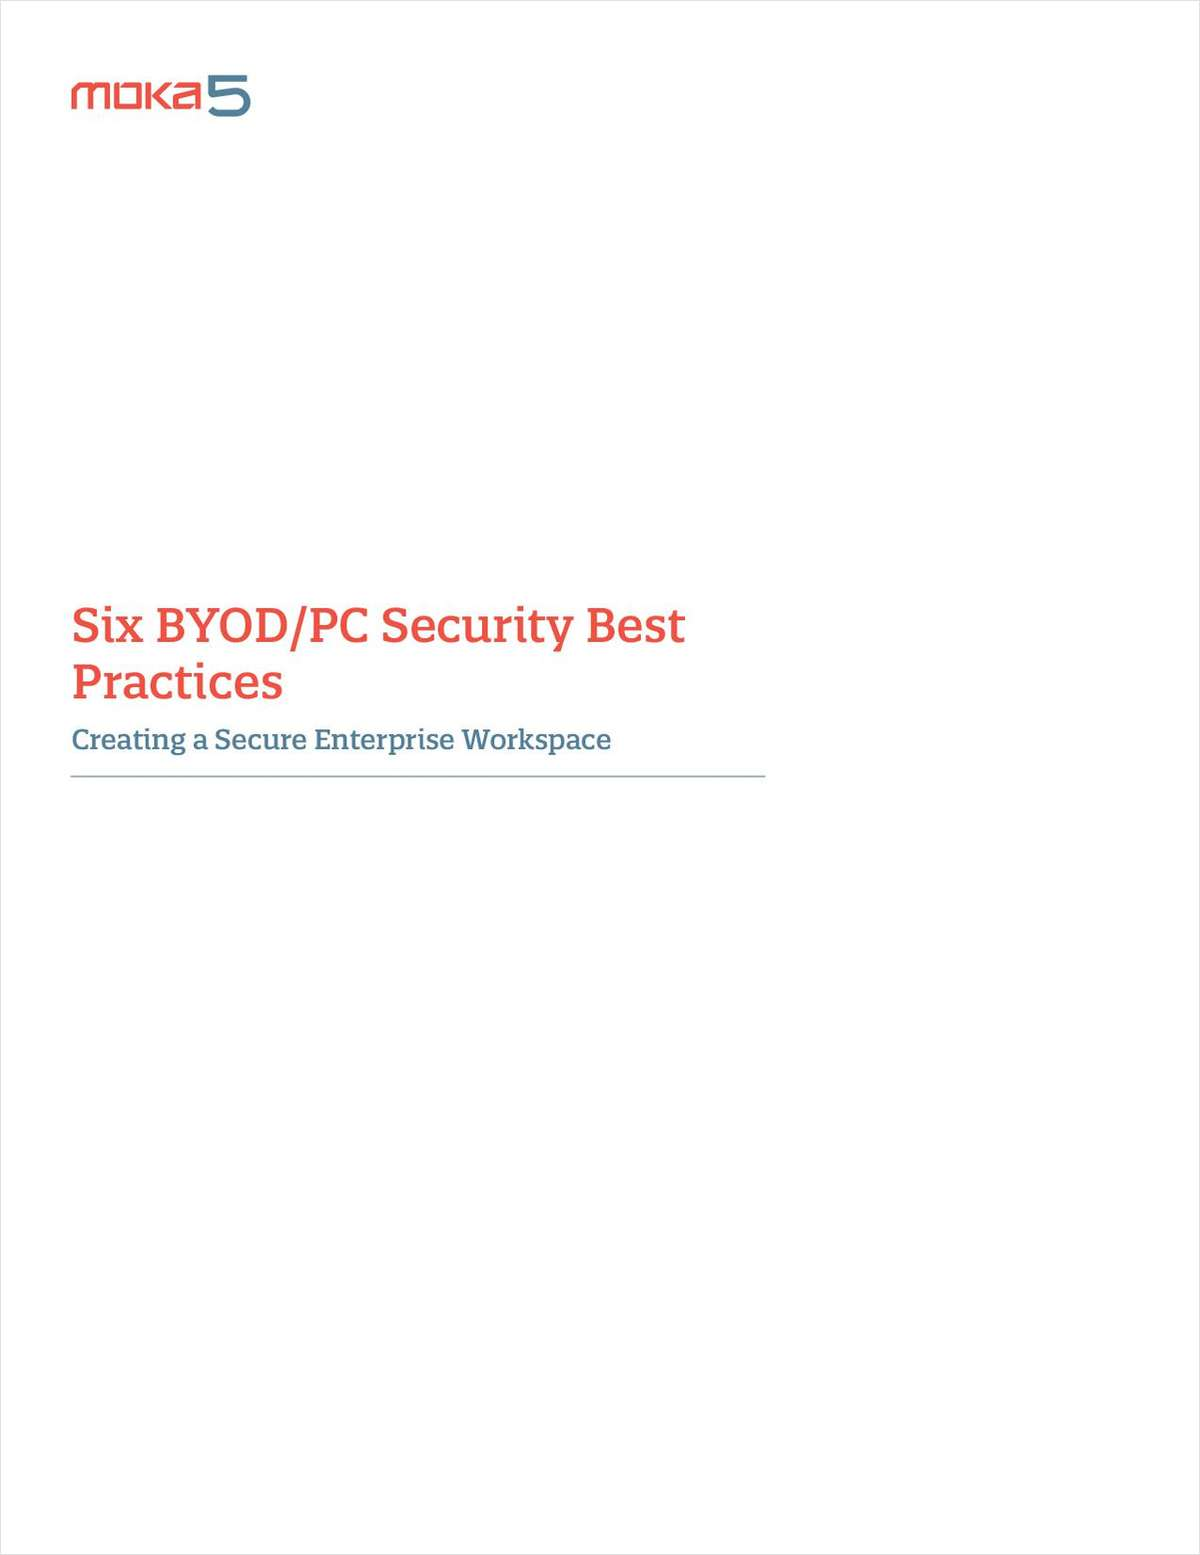 Six BYOD/PC Security Best Practices